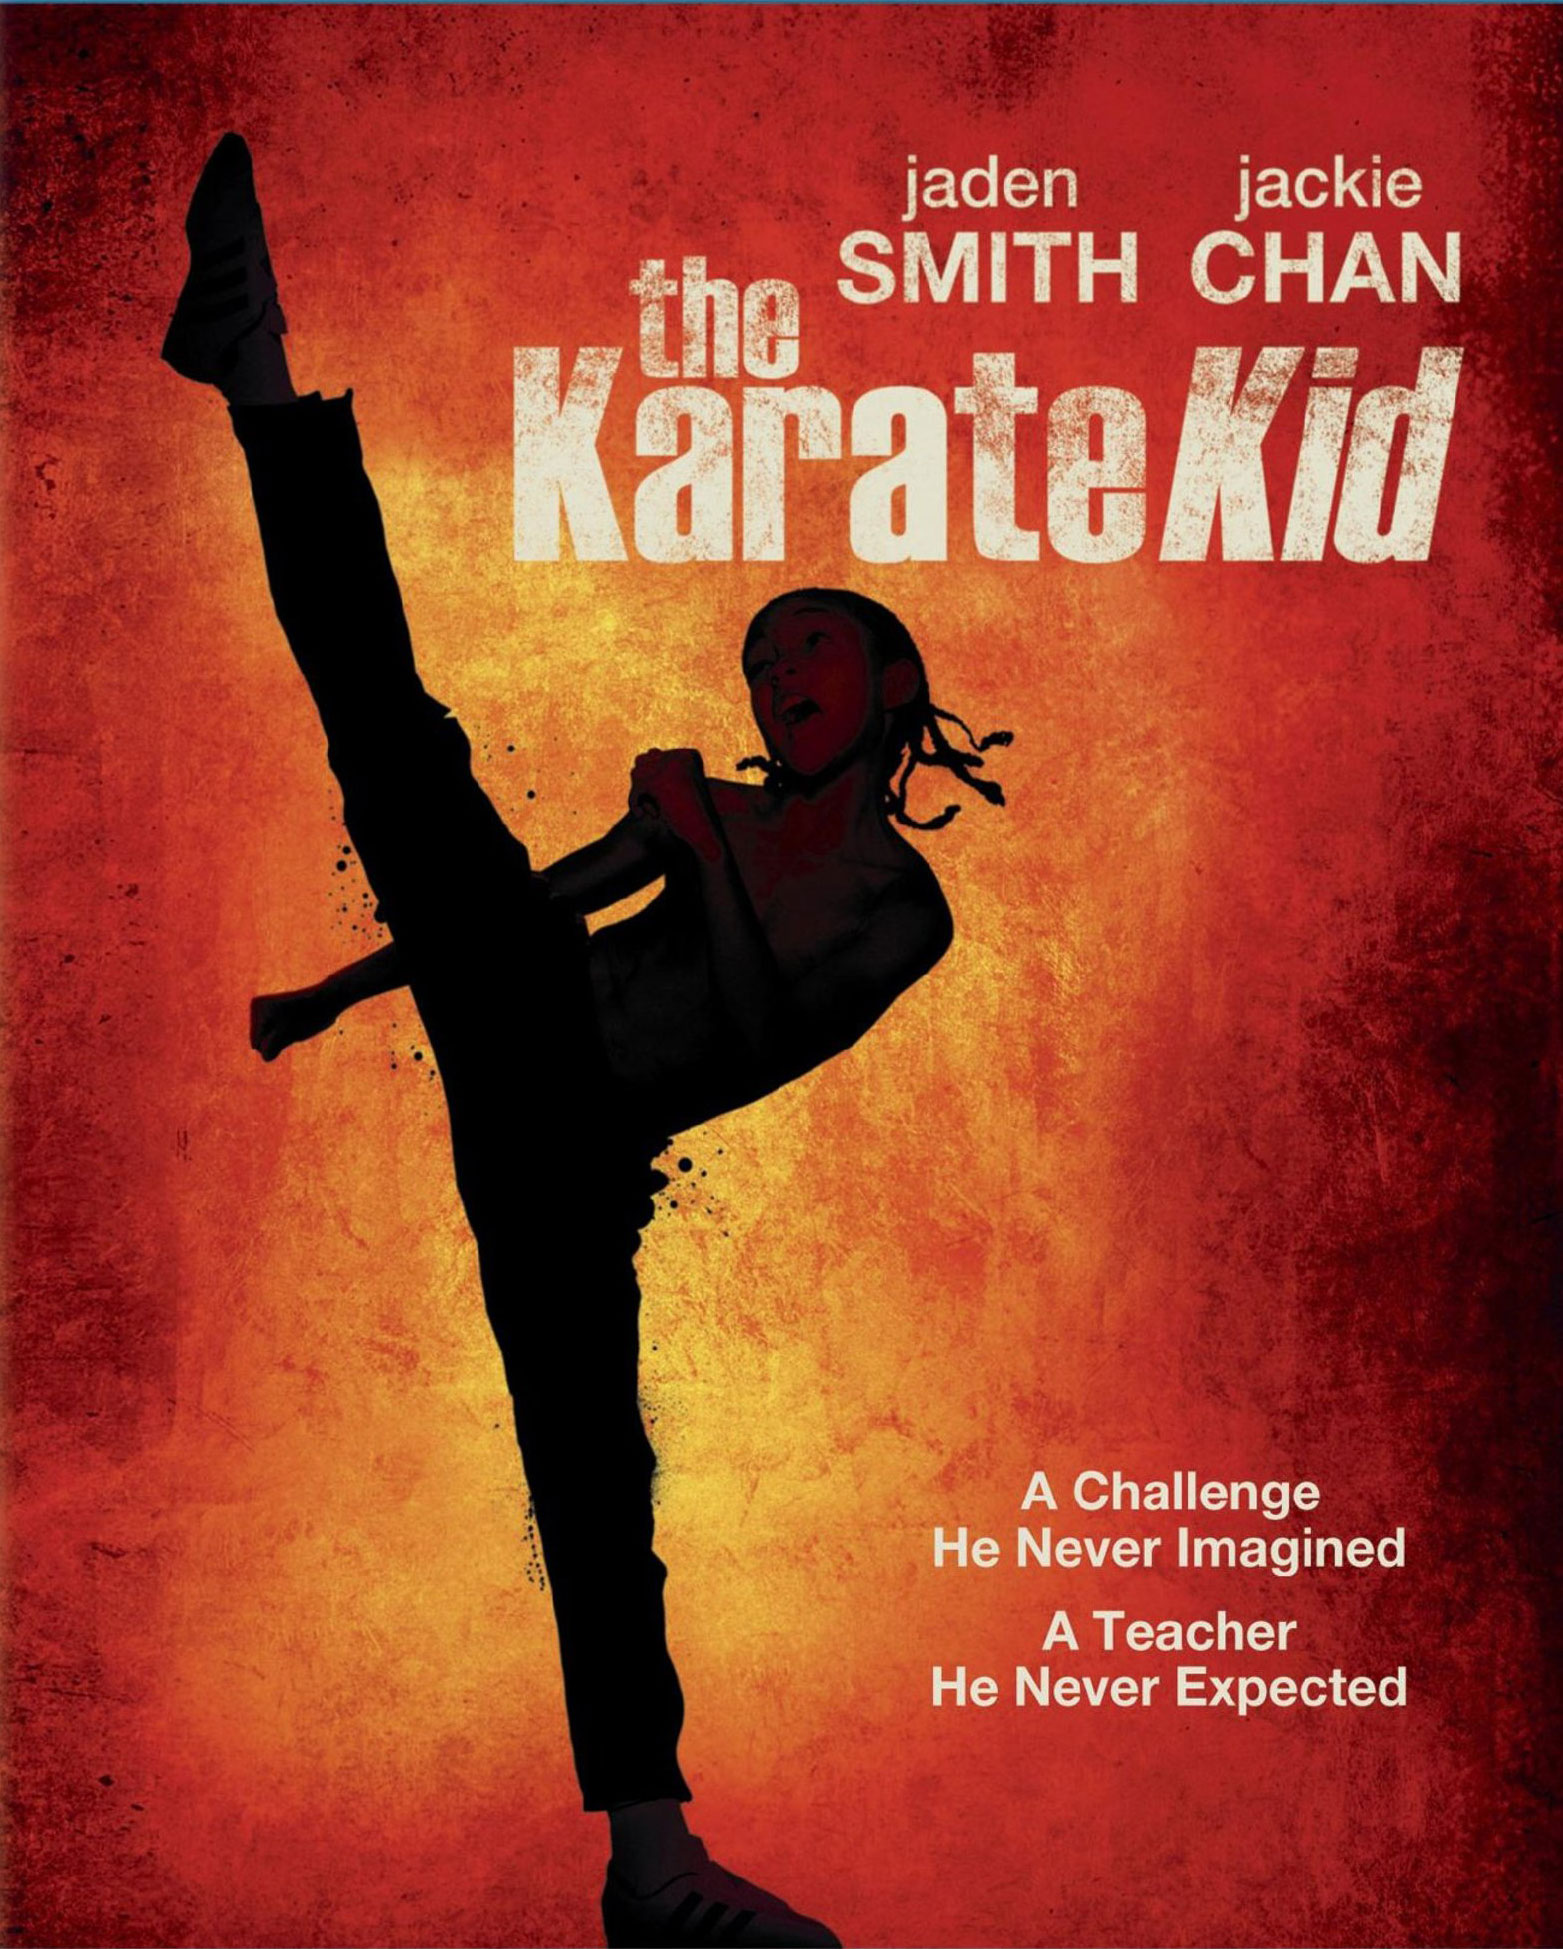 Jaden Smith